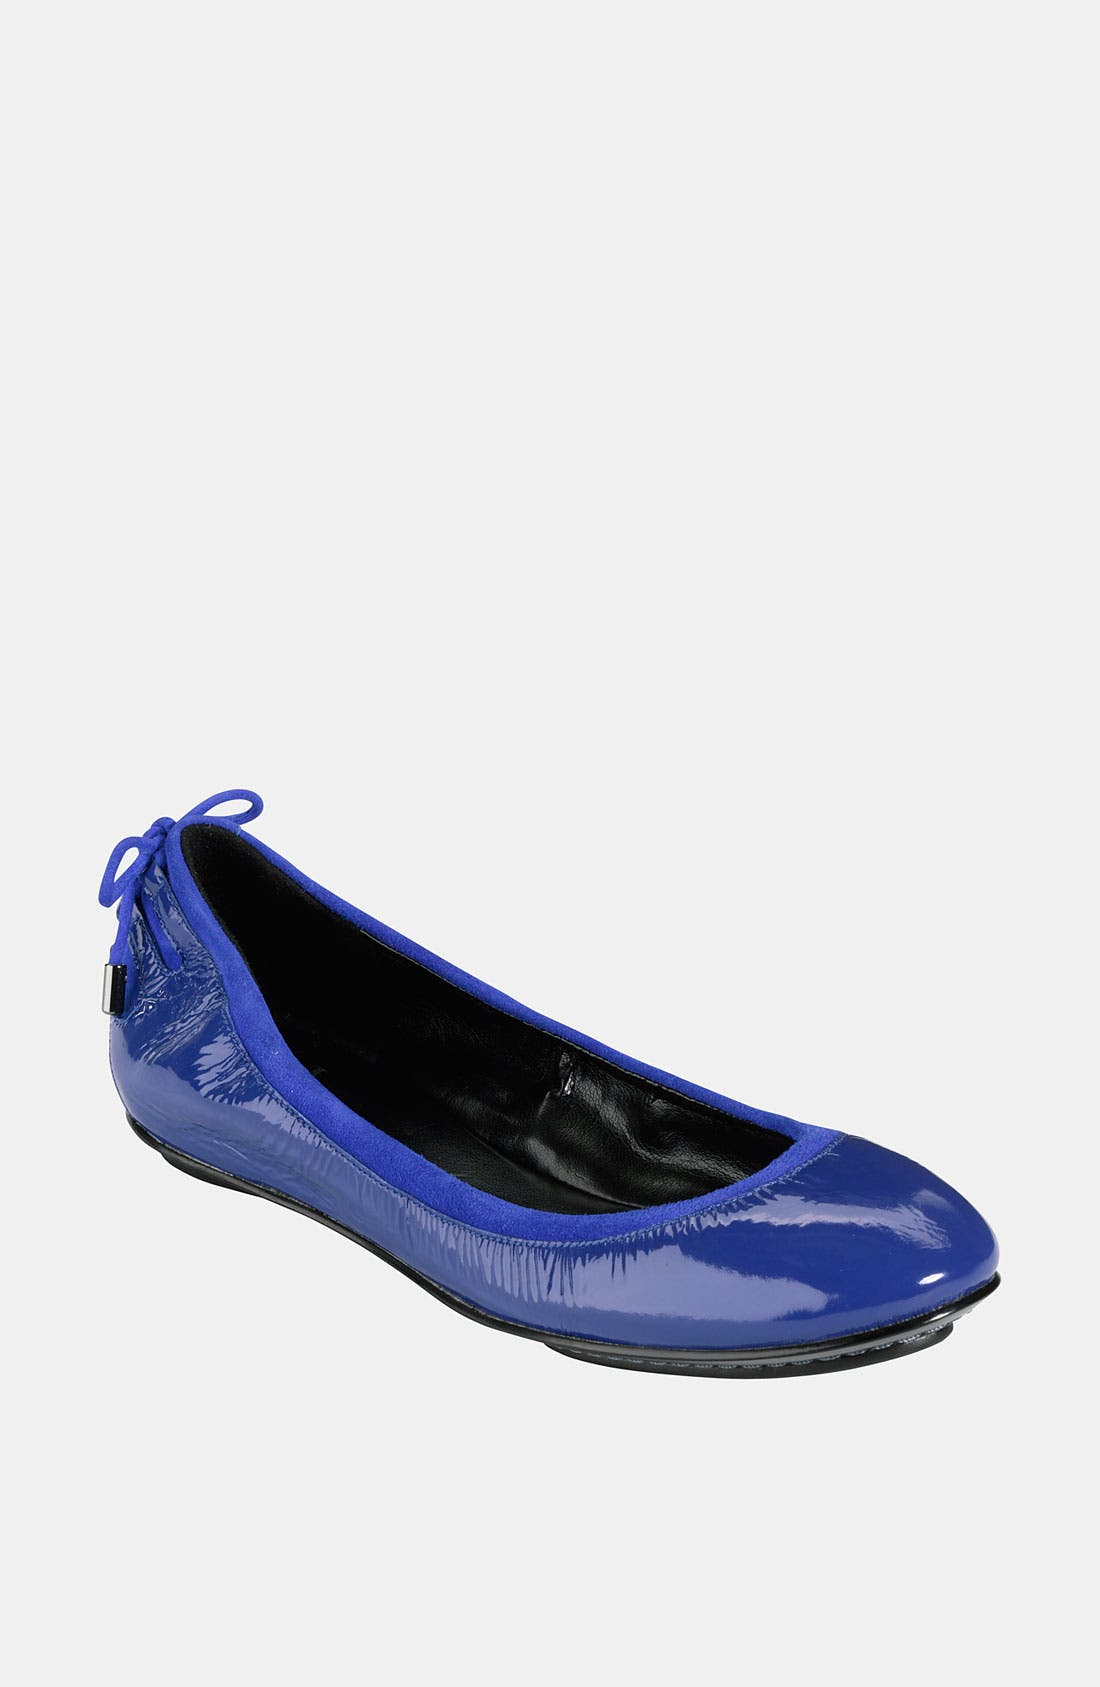 Alternate Image 1 Selected - Maria Sharapova by Cole Haan 'Air Bacara' Flat